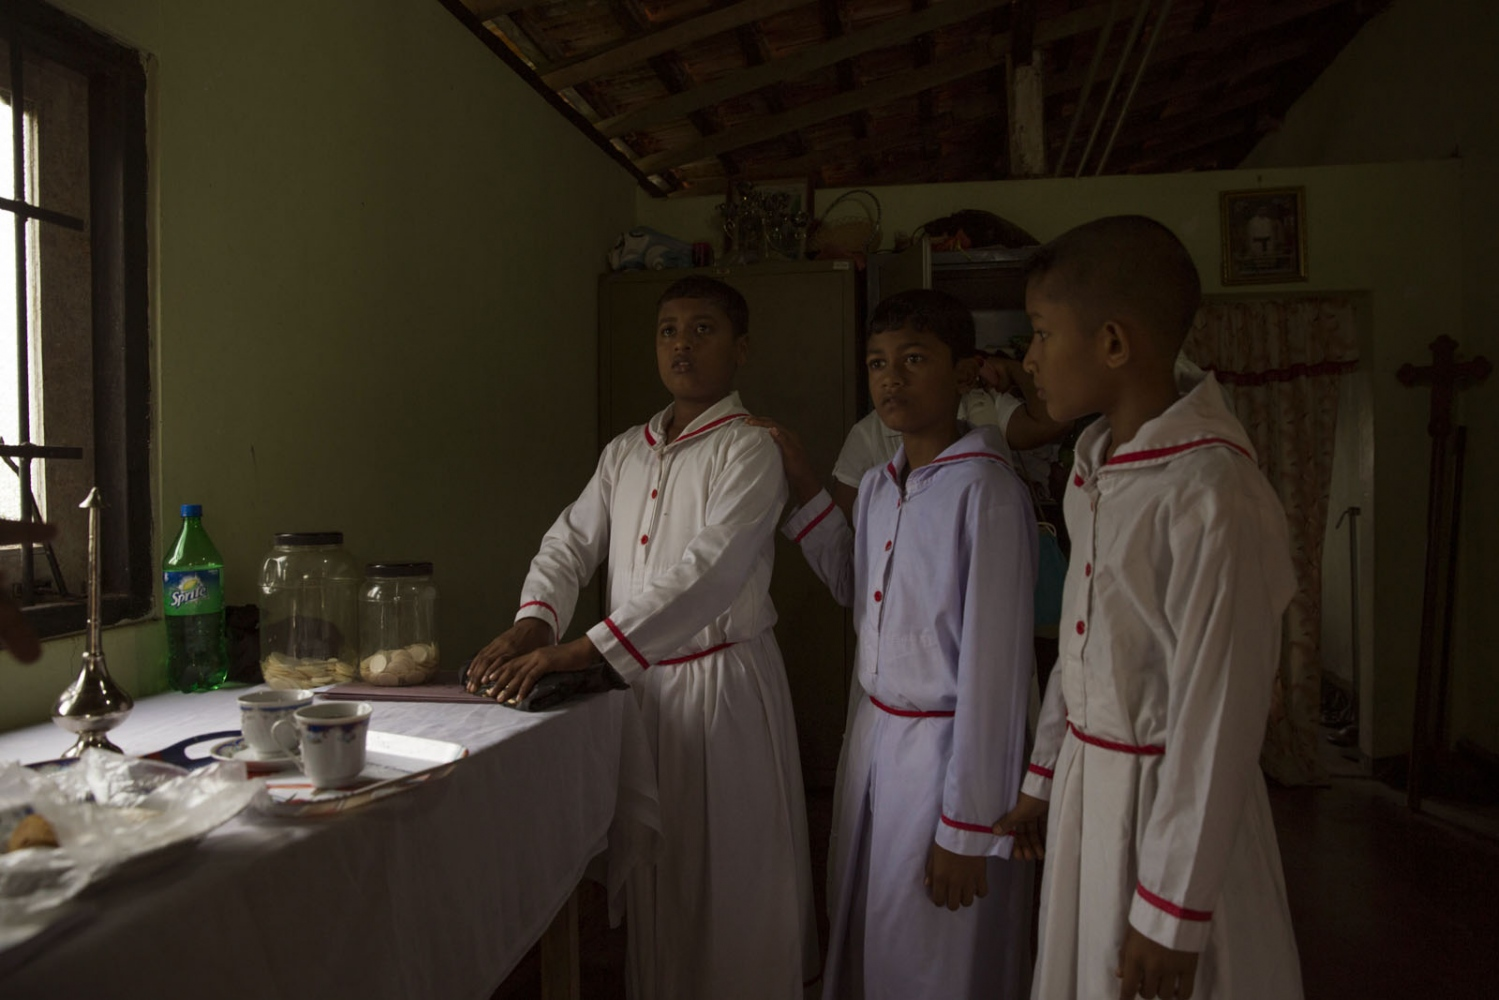 Jeewana Shehan, 13, (left) helping as an alter boy at the Roman Catholic church in Siriambadiya village. His mother is Afro-Sri Lankan but his father is Sinhalese and has lost his African appearance. Siriambadiya, Sri Lanka - January 2017